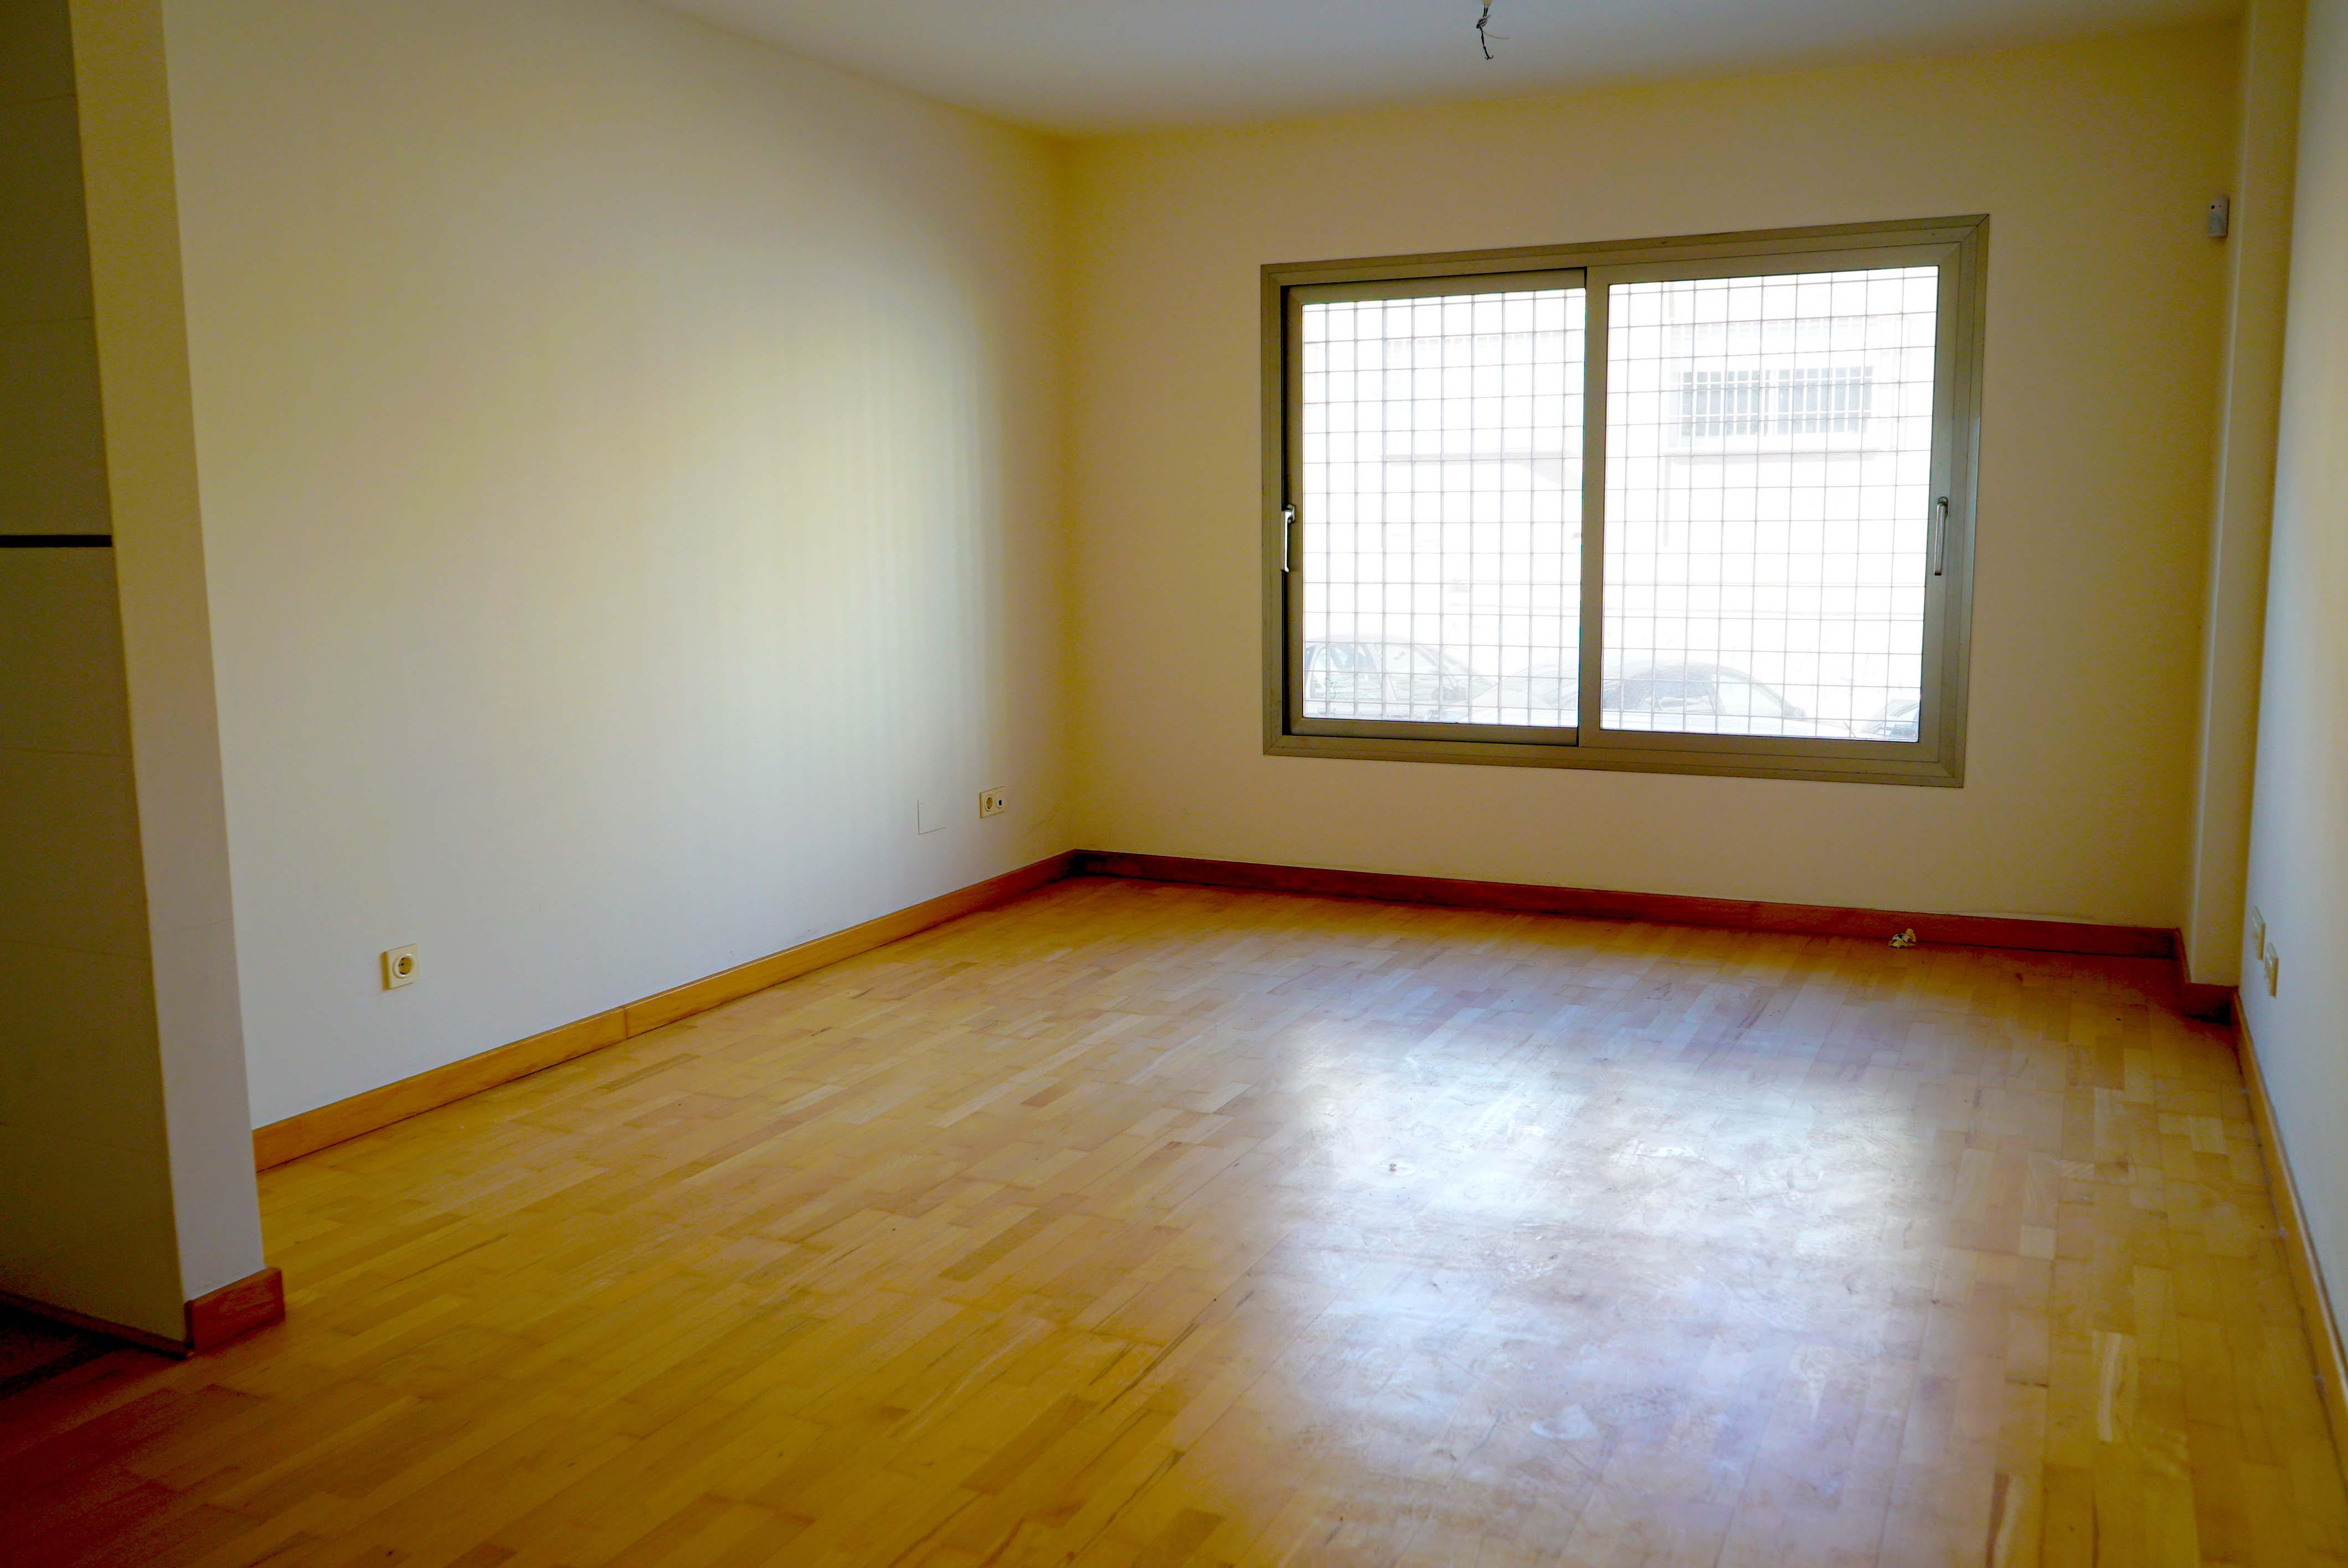 1 bed apartment in Malaga centr - mibgroup.es